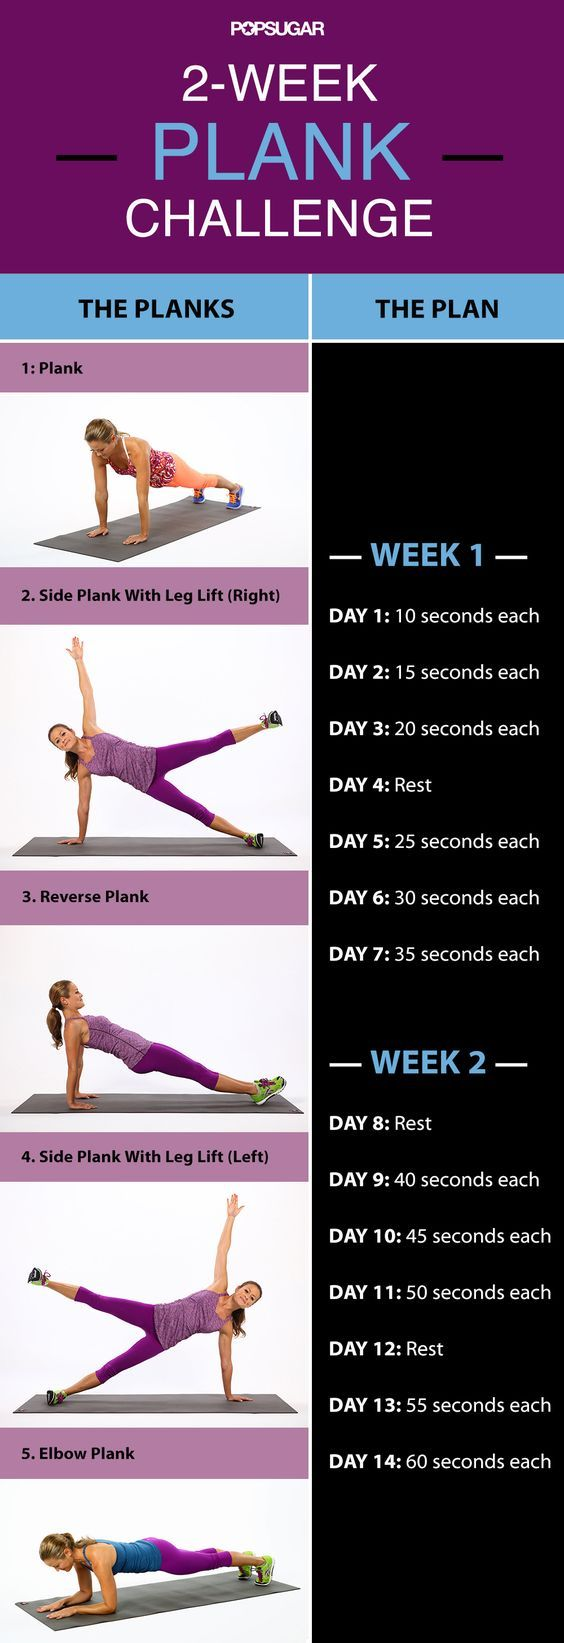 Build up to a 5-minute plank in just 2 weeks!